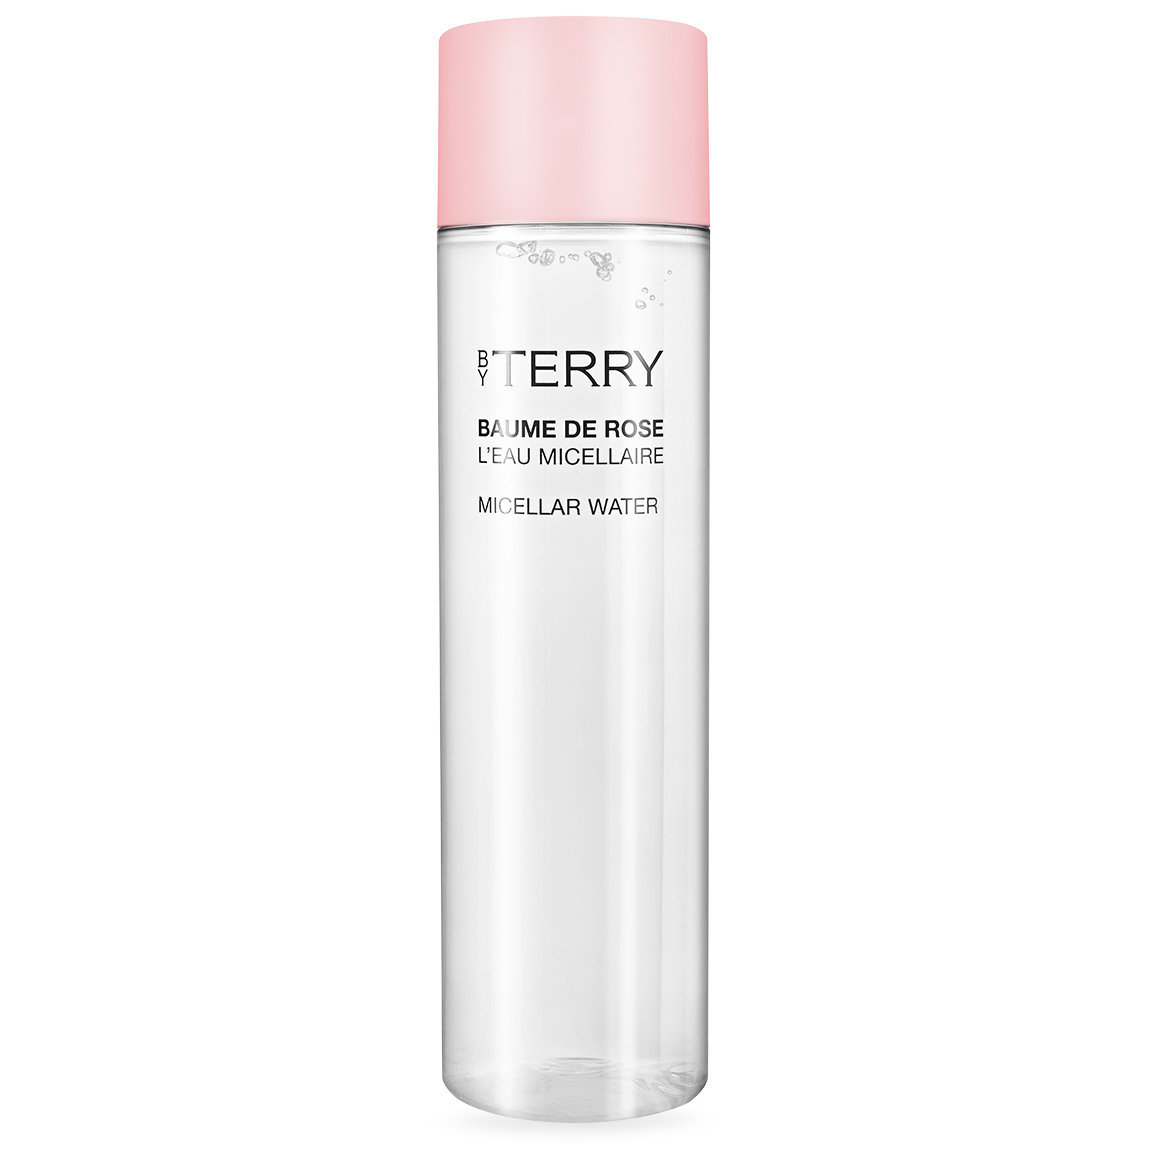 BY TERRY Baume de Rose Micellar Water alternative view 1 - product swatch.